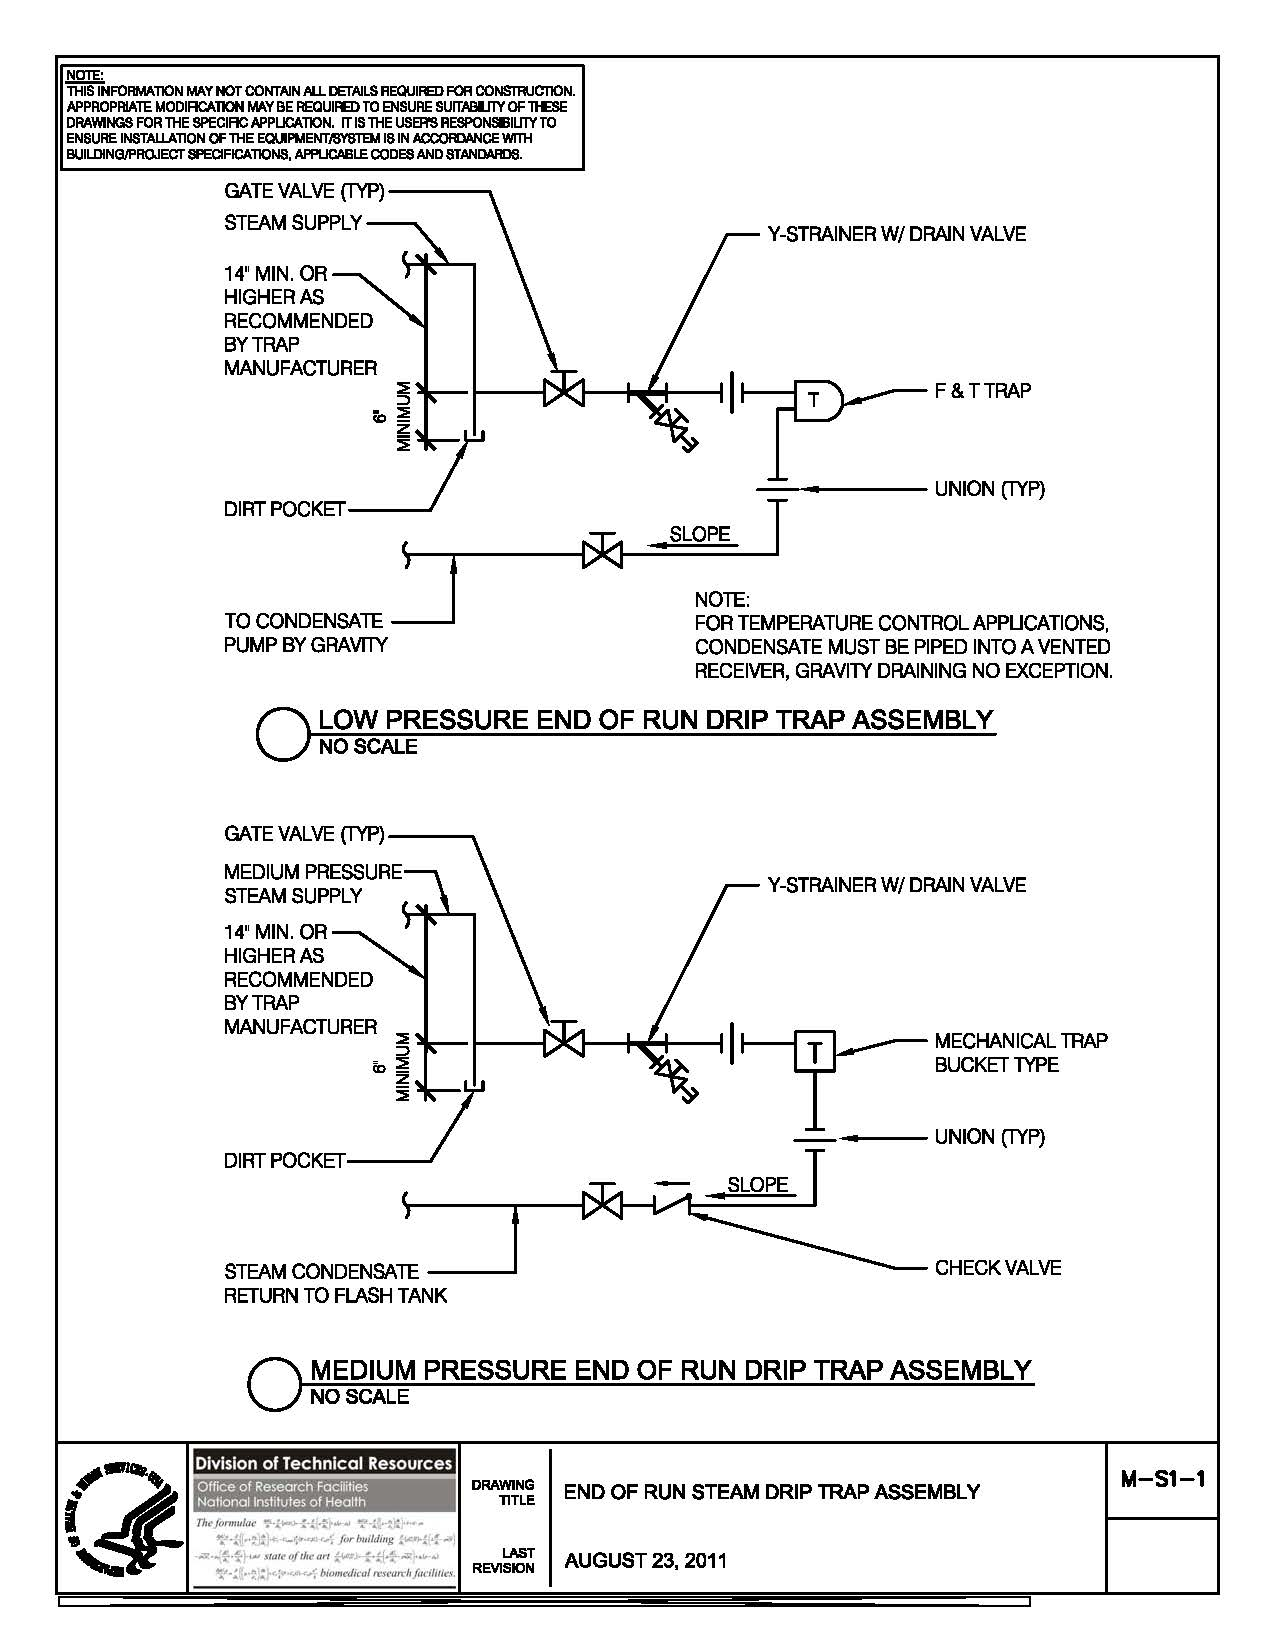 Nih Standard Cad Details End Of Run Electrical Wiring Diagrams Thumbnail M S1 1 Steam Drip Trap Assembly